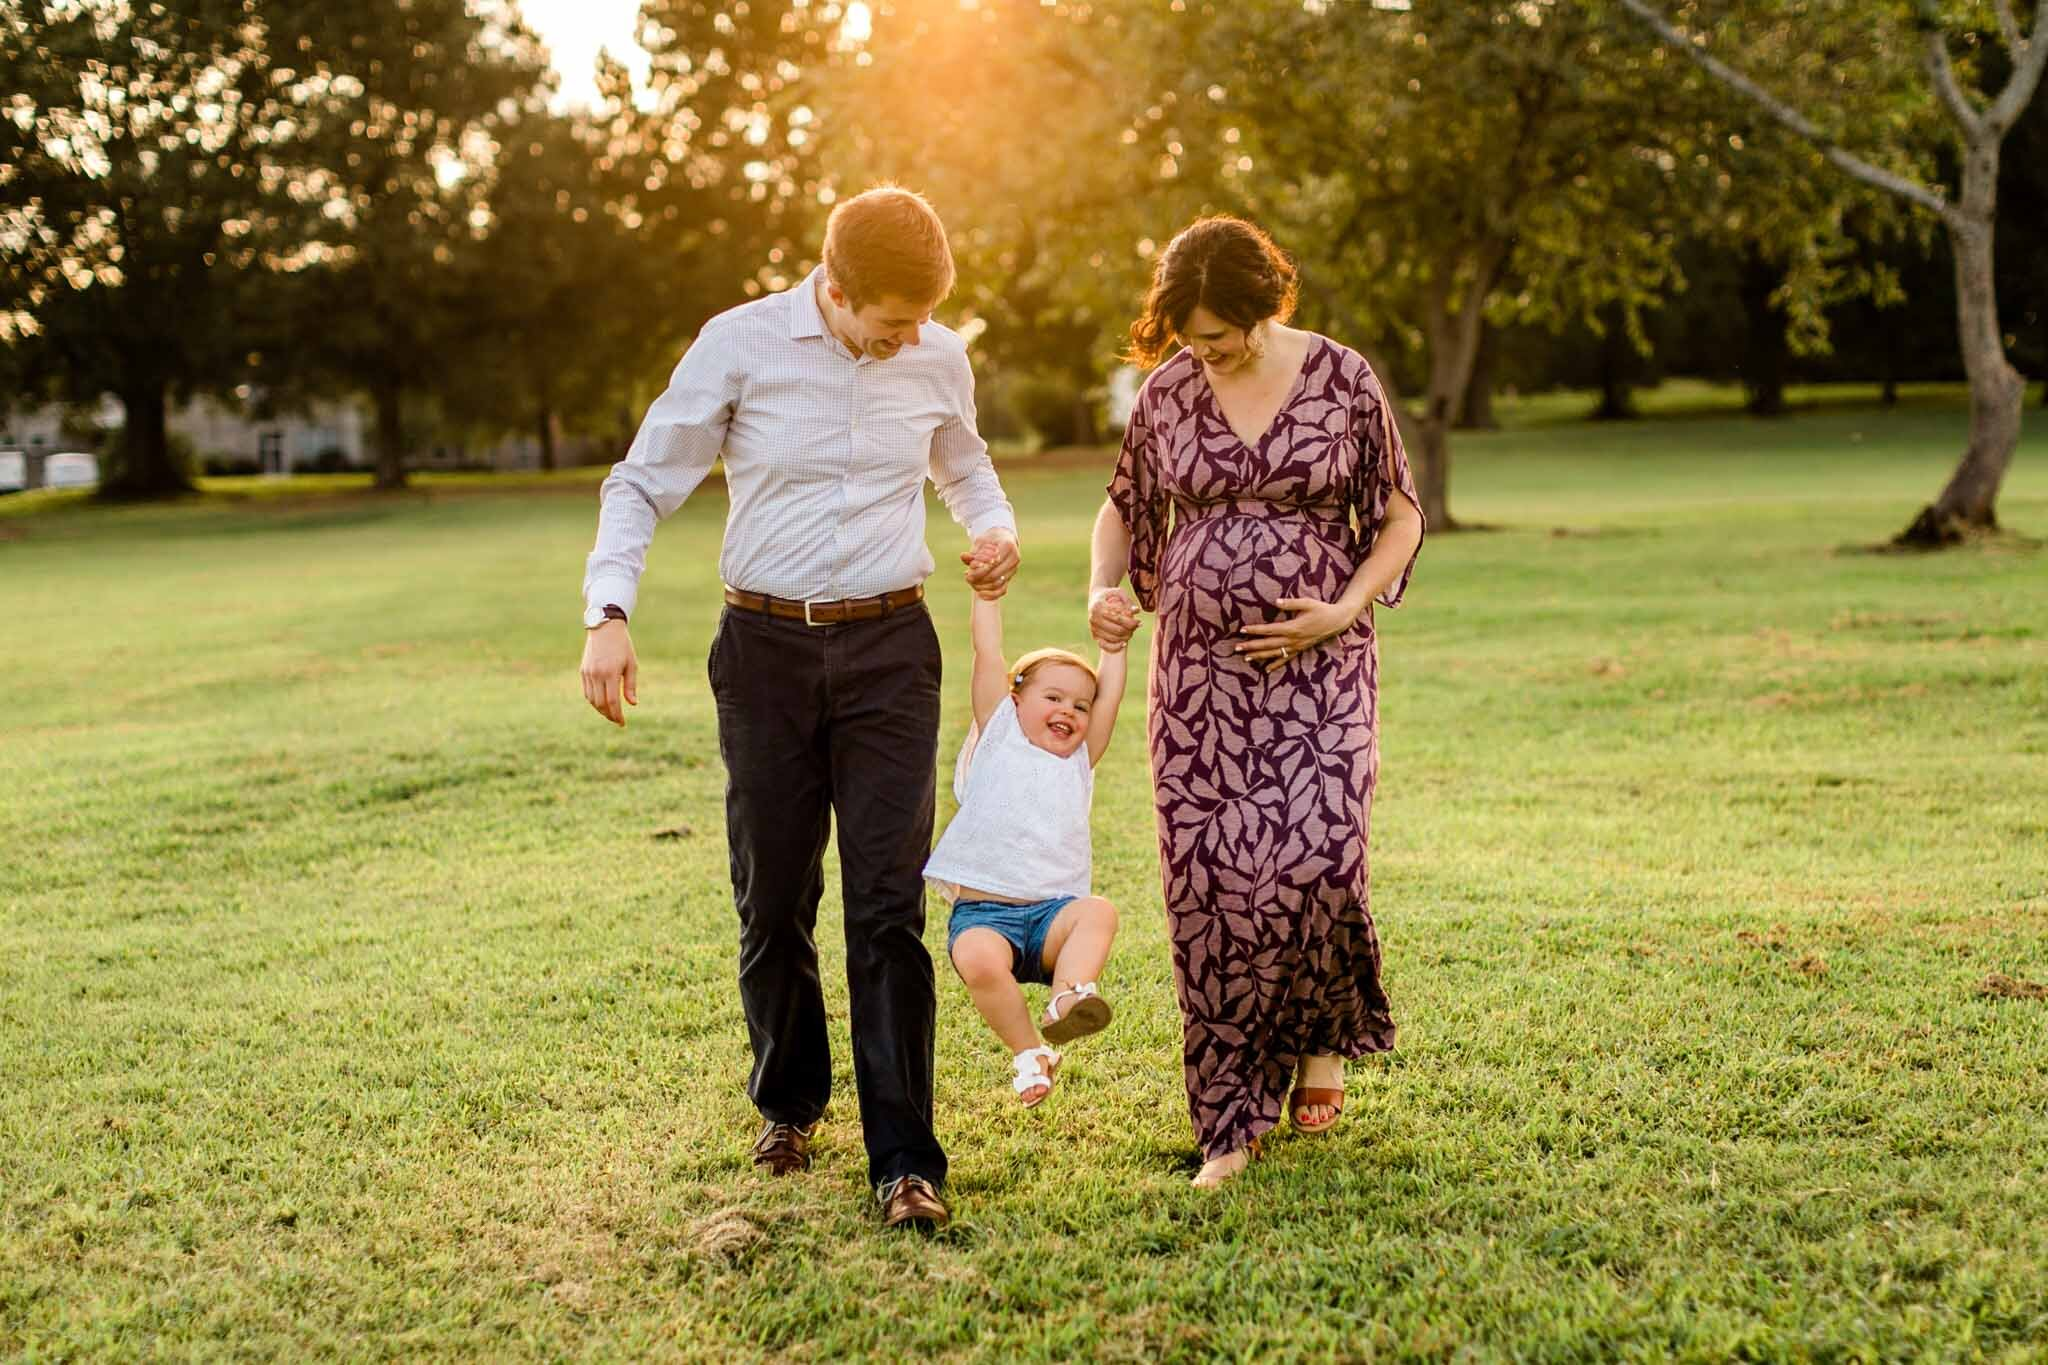 Raleigh Family Photographer | By G. Lin Photography | Family walking outside at Dix Park at sunset